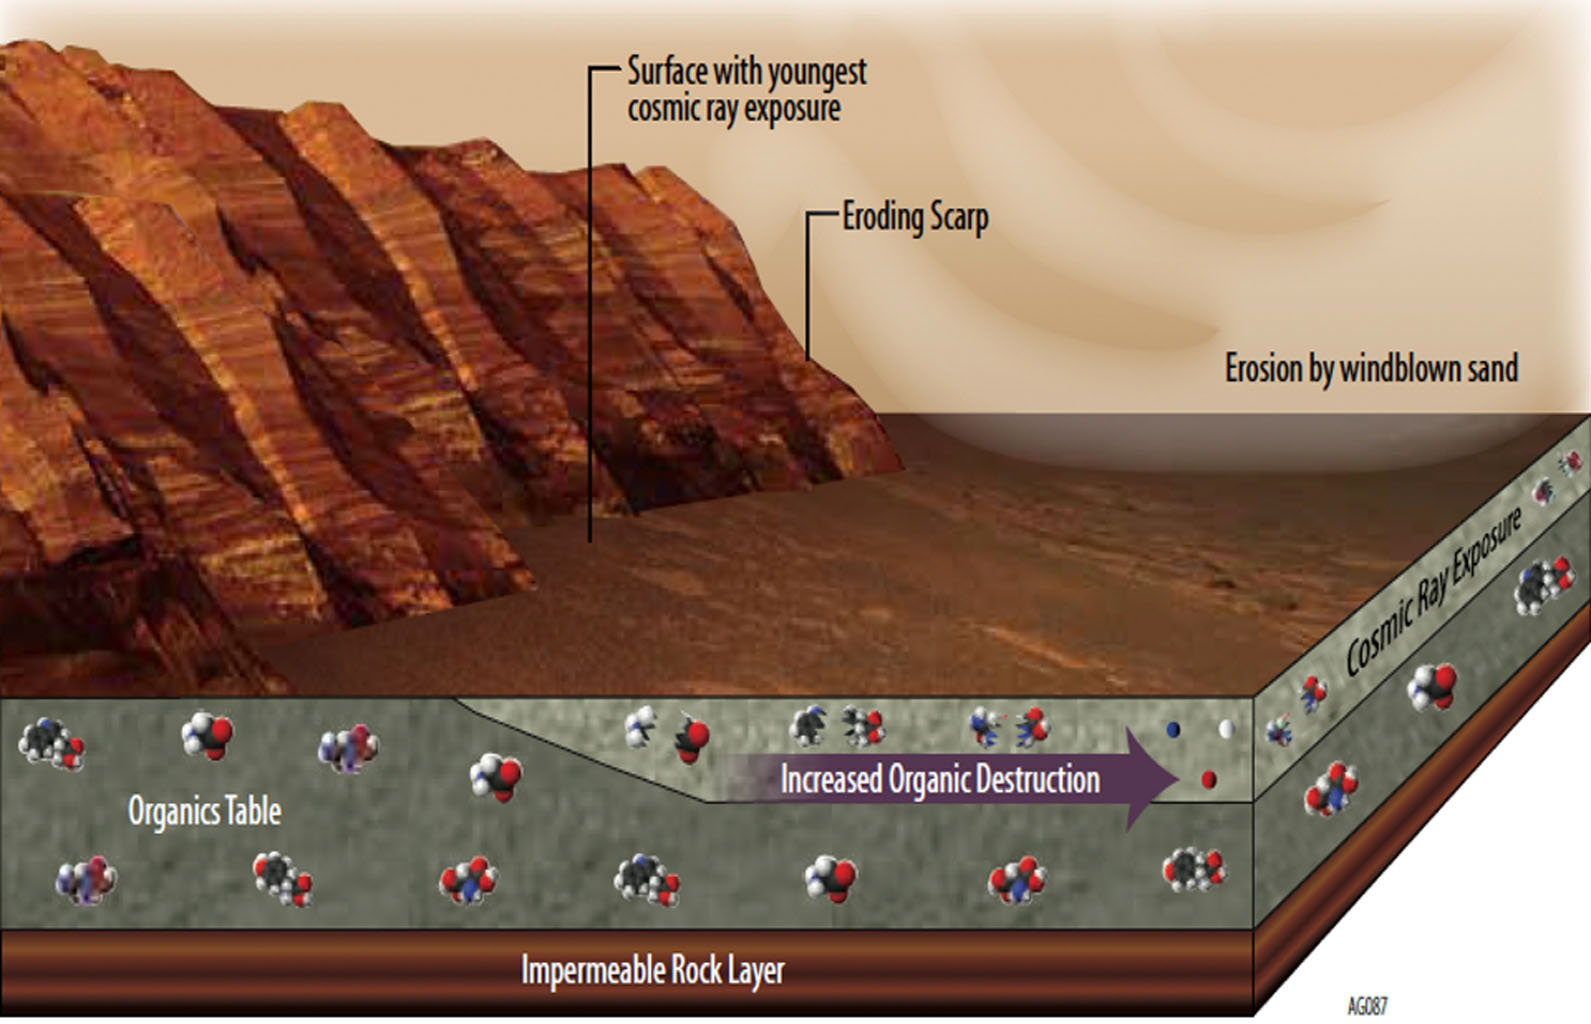 This illustration portrays some of the reasons why finding organic chemicals on Mars is challenging. Whatever organic chemicals may be produced on Mars or delivered to Mars face several possible modes of being transformed or destroyed.